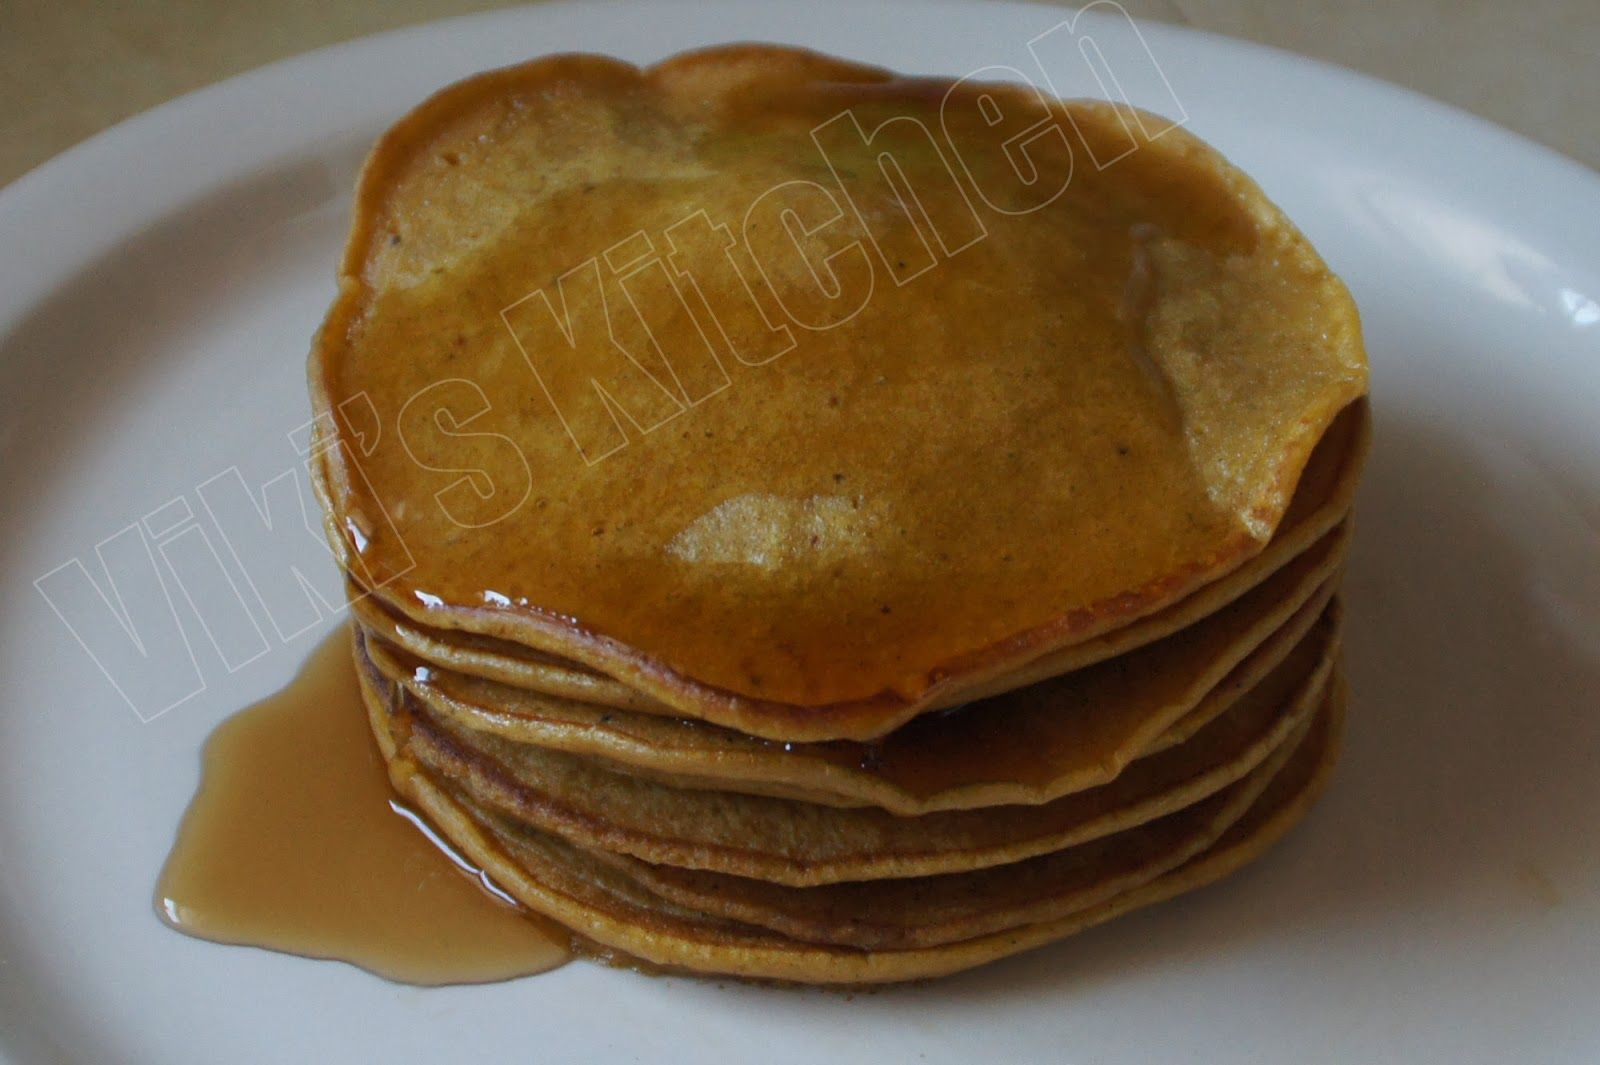 Pumpkin pancakes with maple syrup.